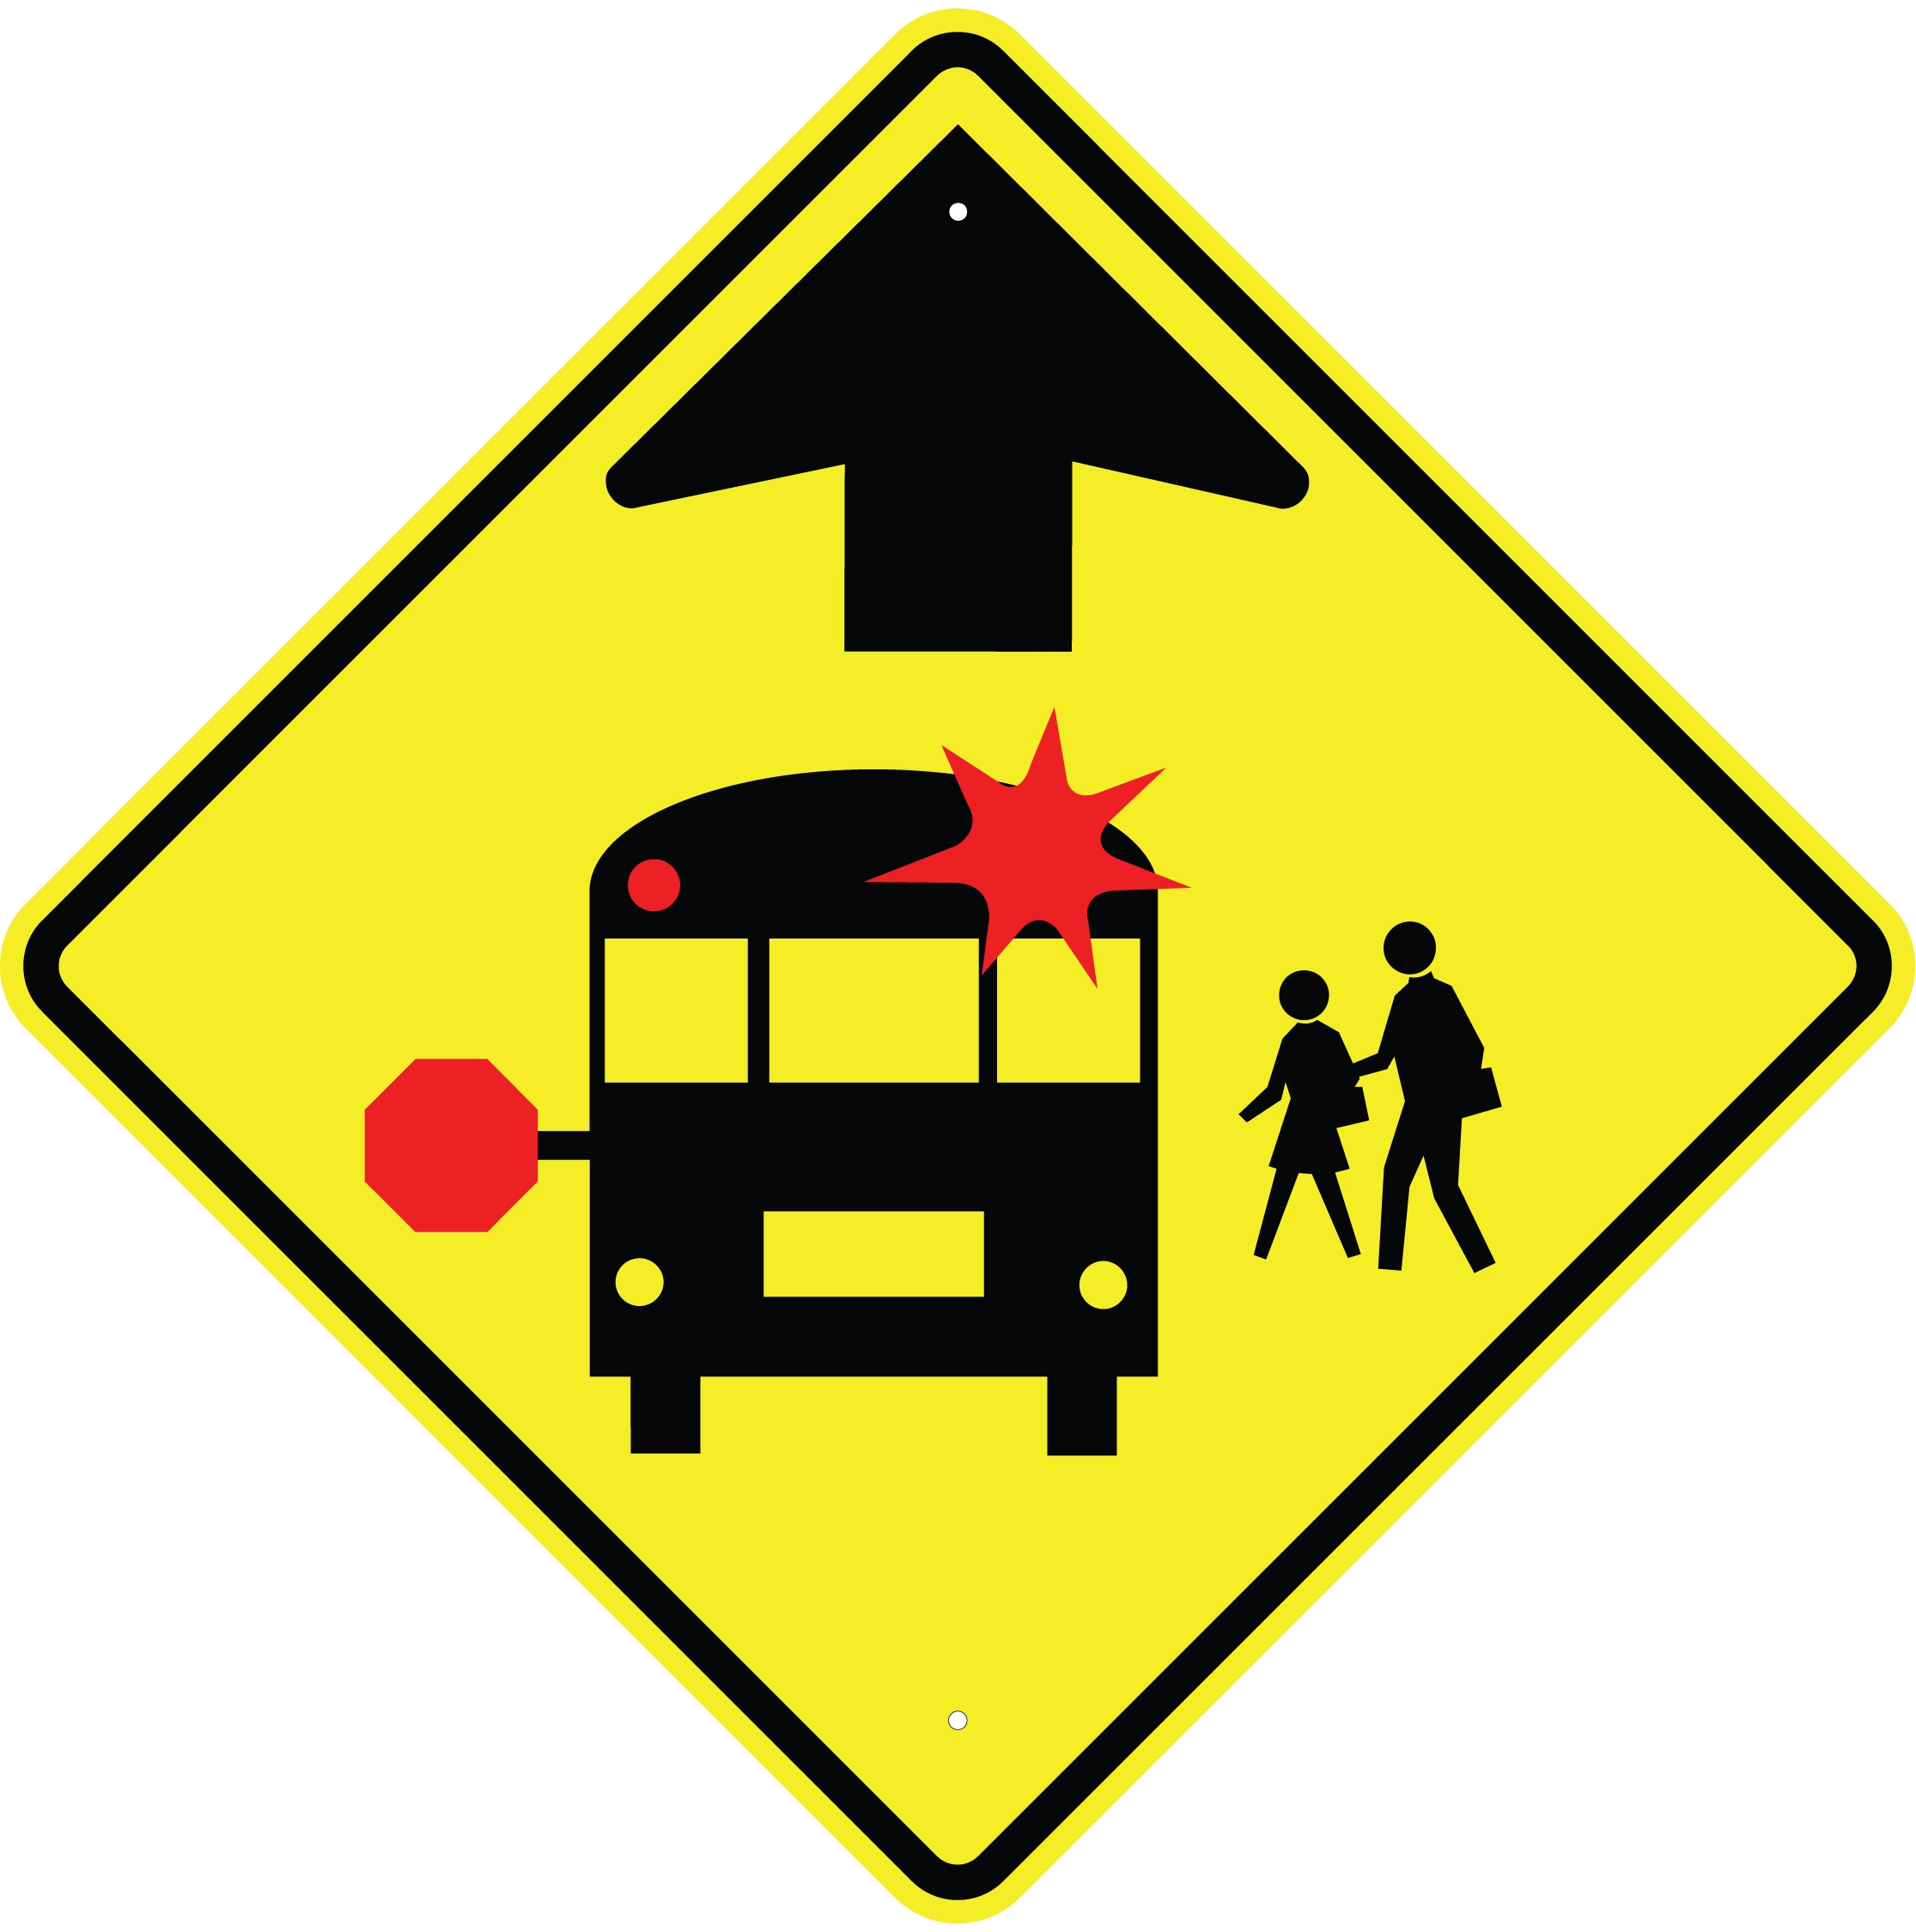 Bus Stop Clipart at GetDrawings.com.